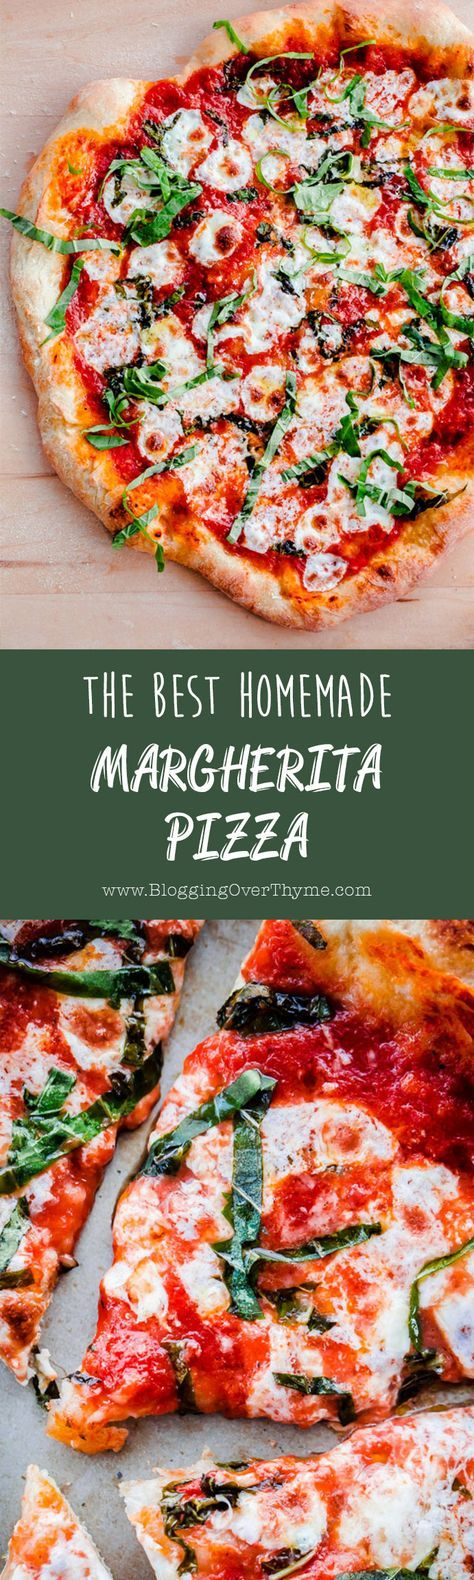 For the best homemade pizza, you will want to preheat your oven to the highest temperature possible.